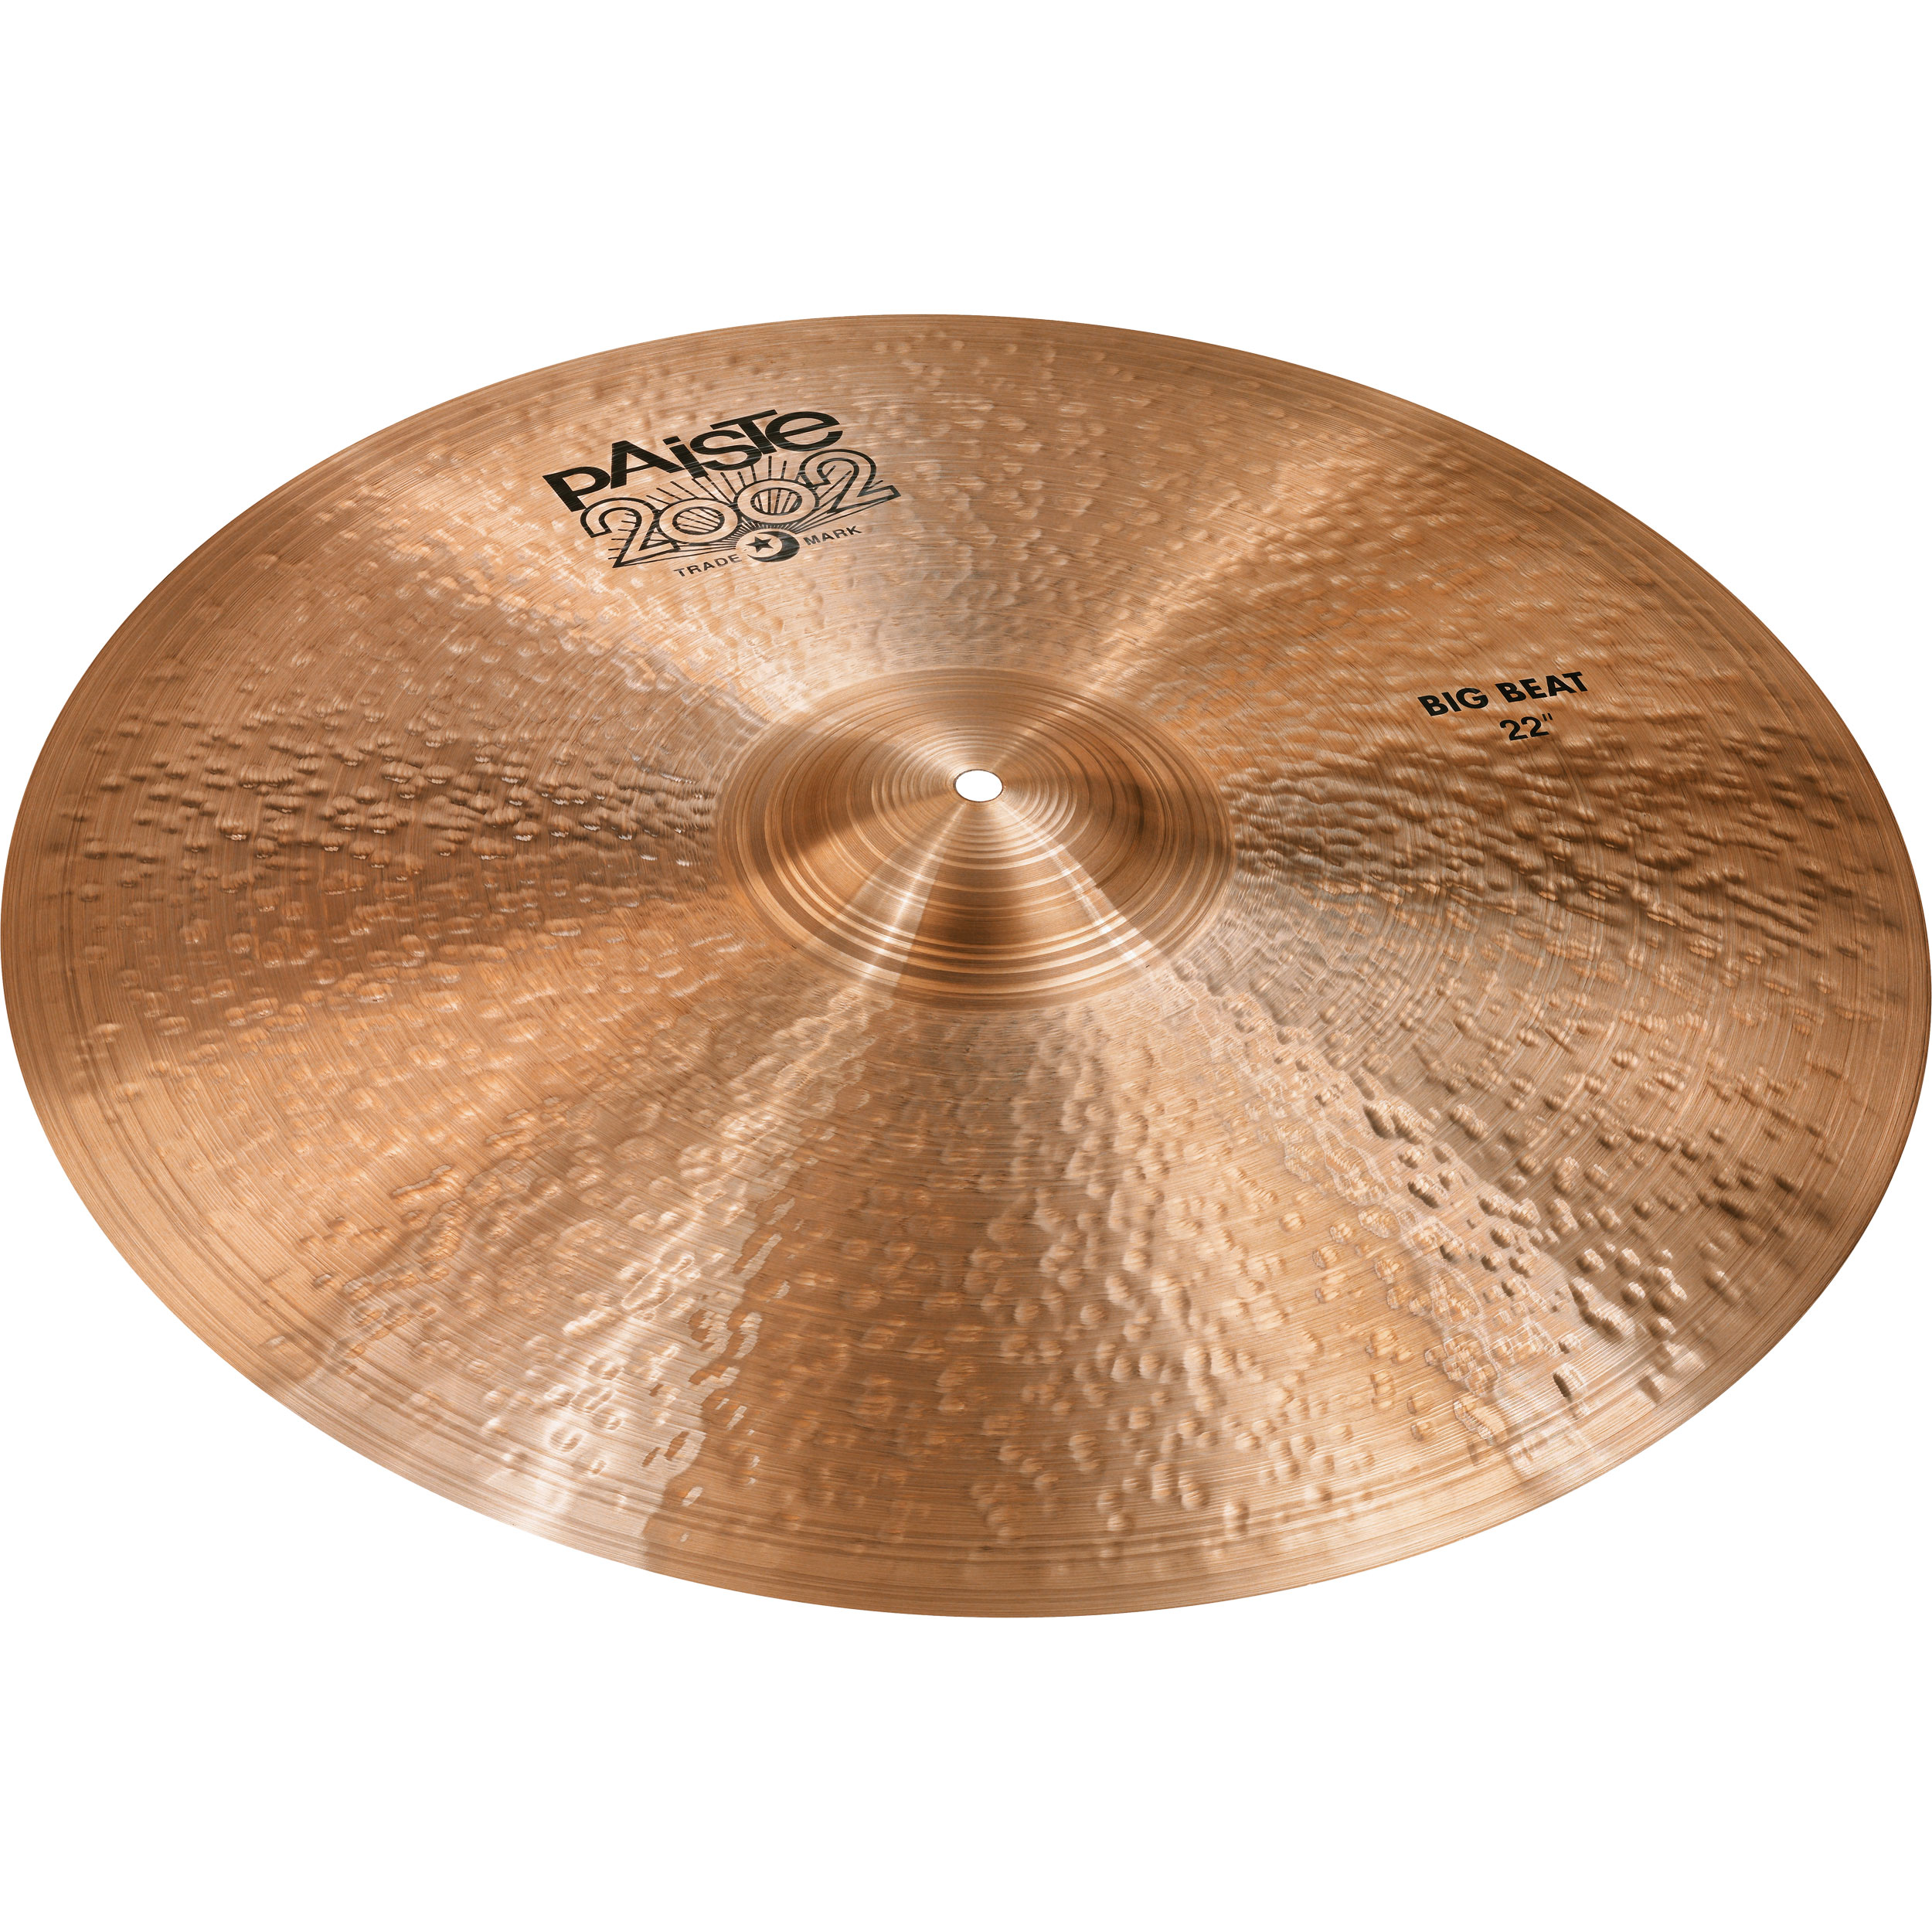 "Paiste 22"" 2002 Big Beat Cymbal"